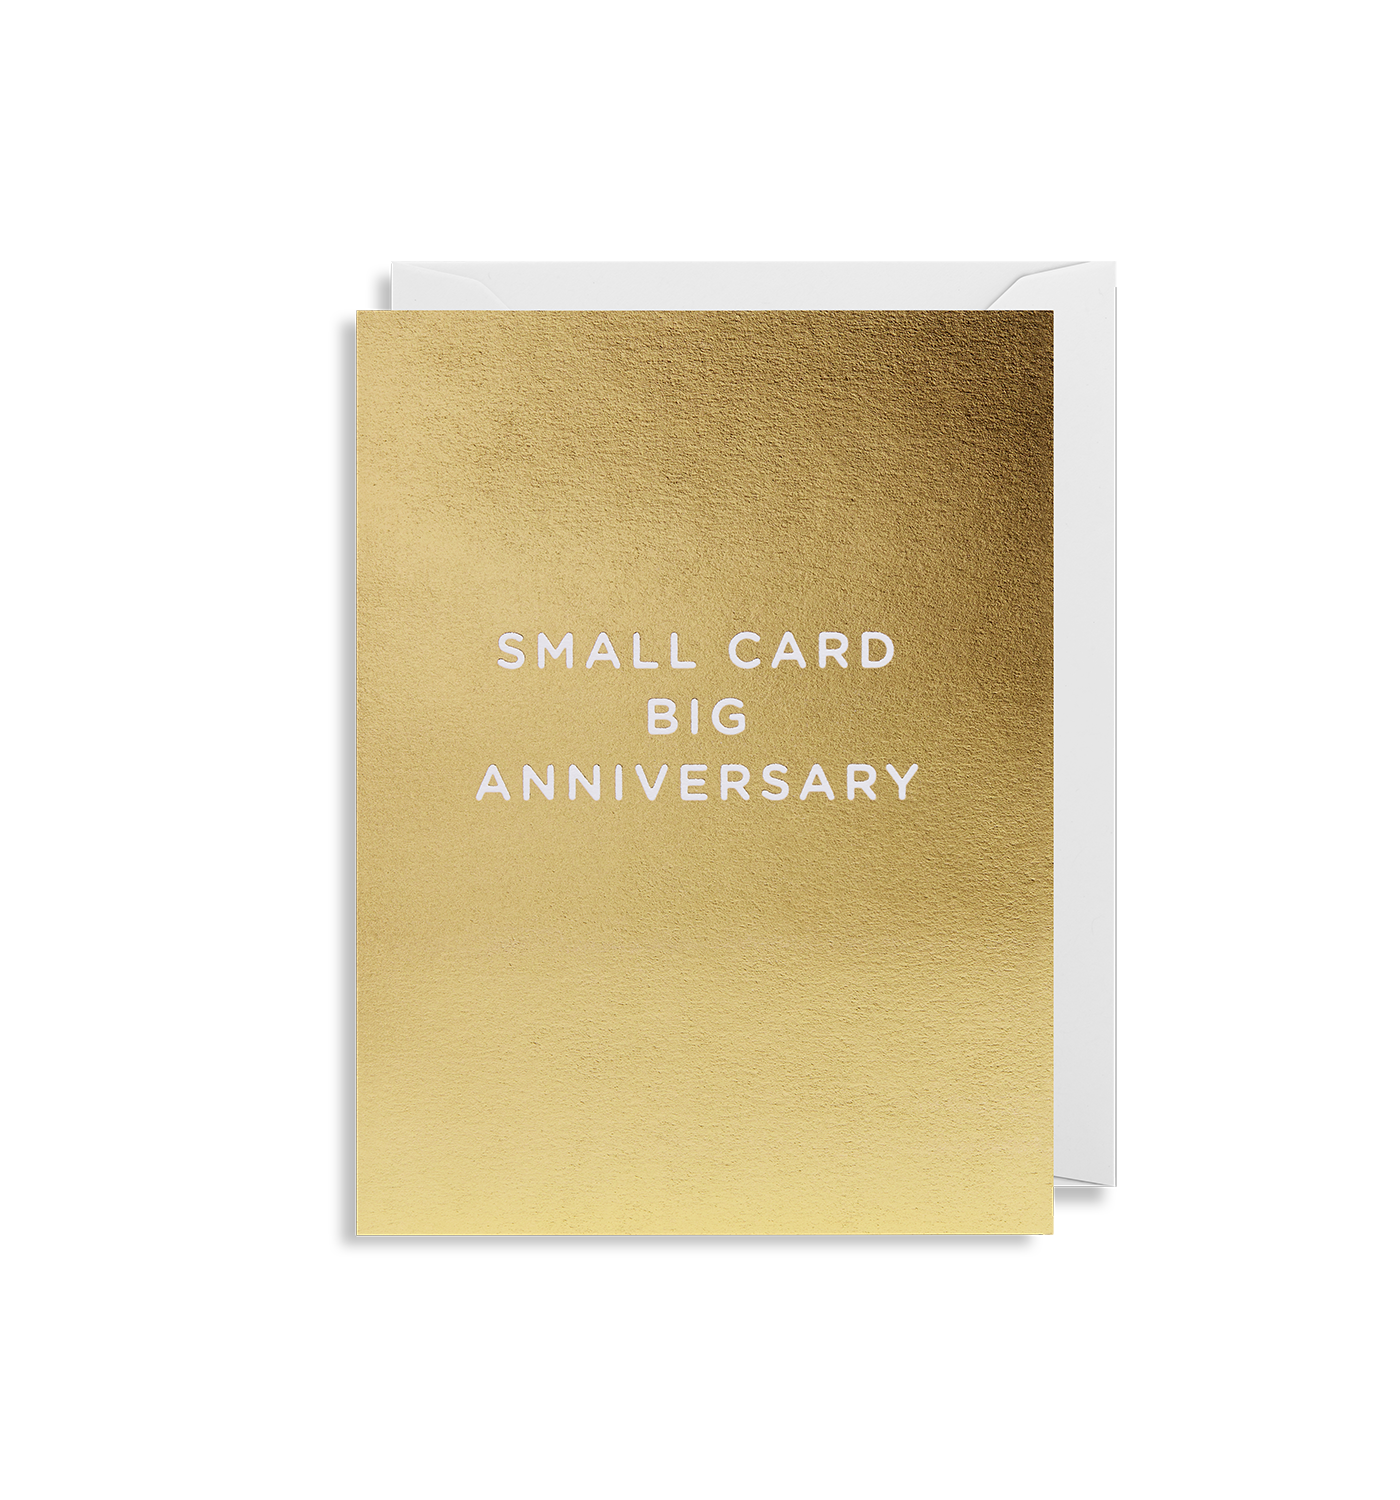 Big Anniversary Mini Card